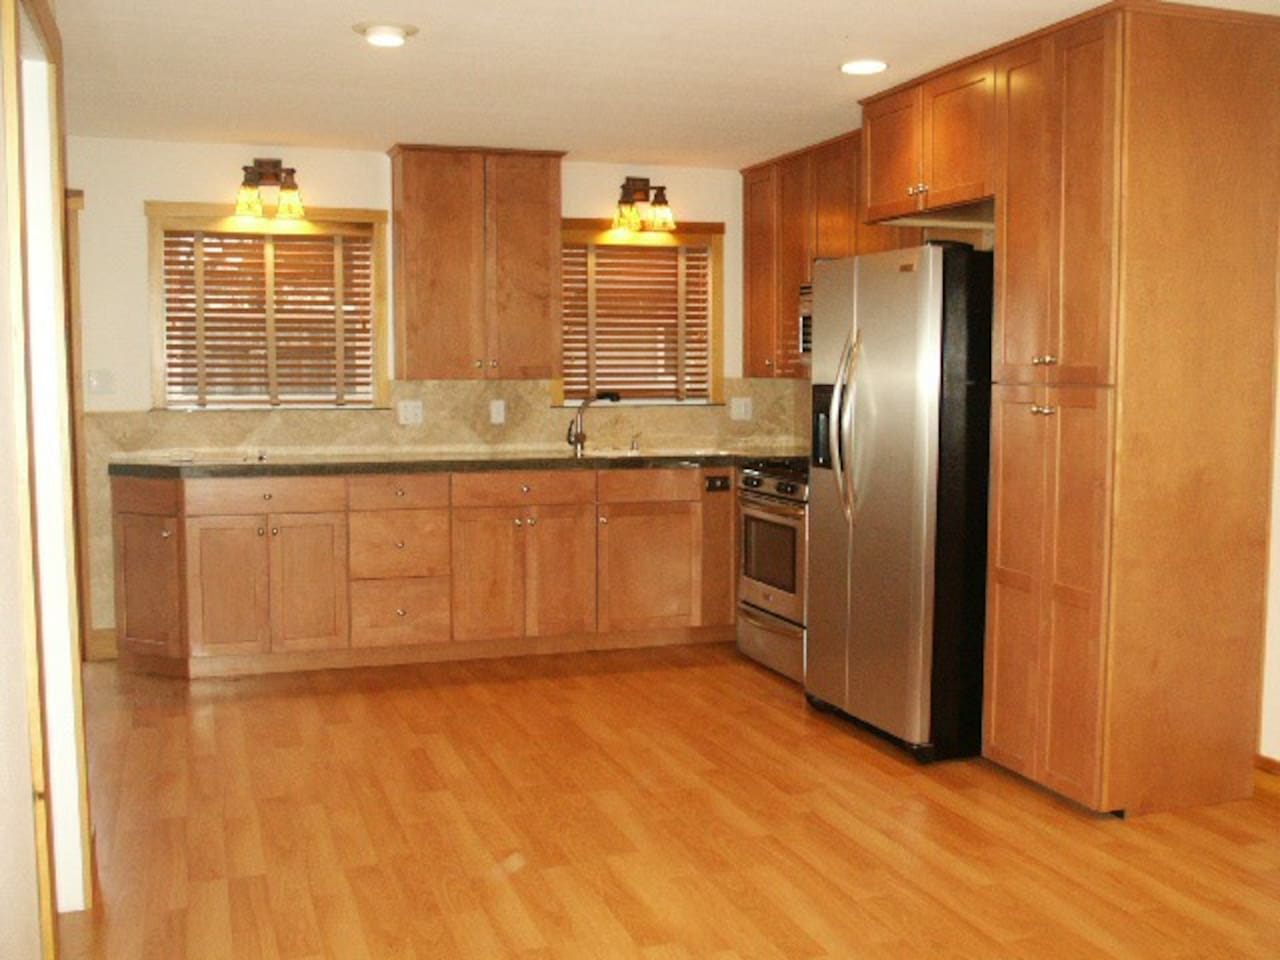 Great kitchen with everything needed to prepare a full meal for a family of 4. BBQ is on the covered patio just outside the sliding glass door.